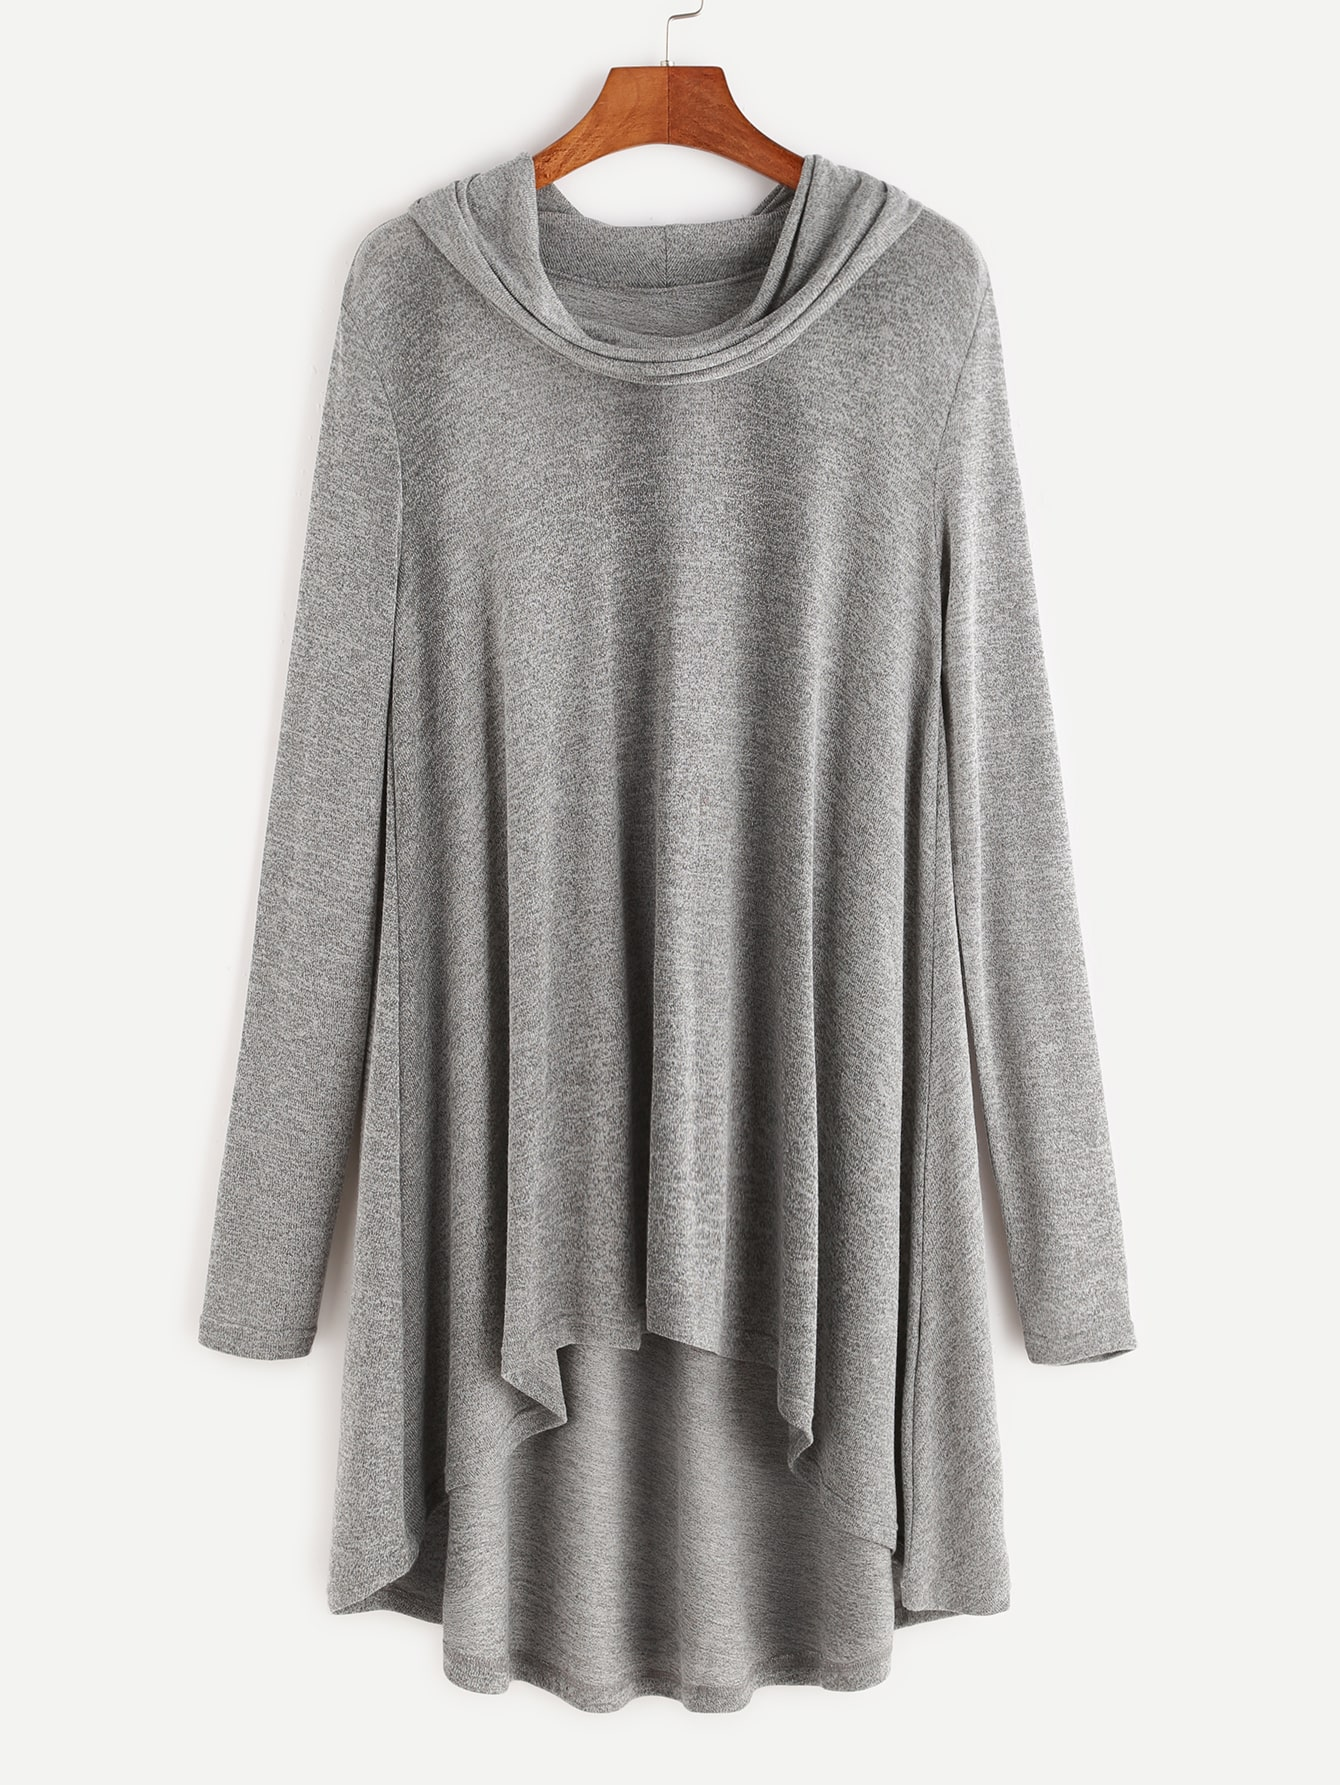 Buy Heather Grey Cowl Neck High Low T-shirt